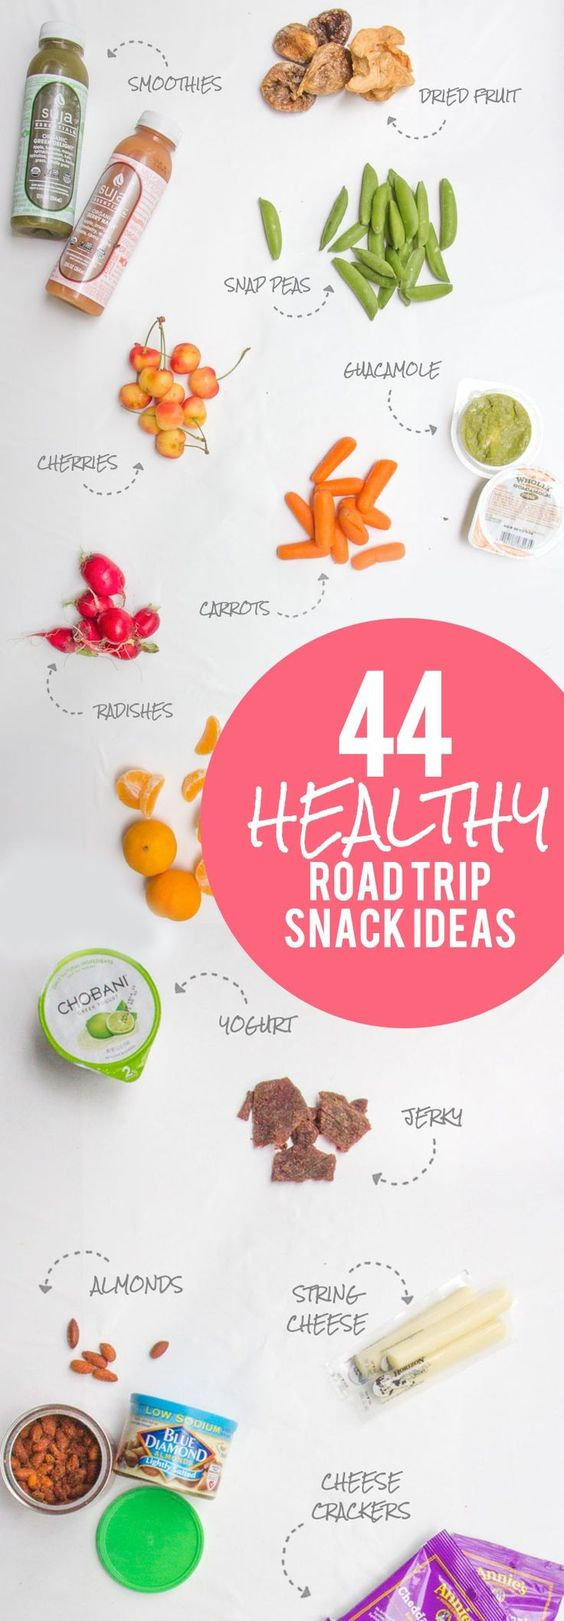 44 Healthy Road Trip Snack Ideas #ad With all of the Holiday Road Trips to see family this time of year, this will be a super helpful pin to have on your boards! Lots of (healthy) snack ideas for your next road trip! Click through to see the list. Back To Her Roots